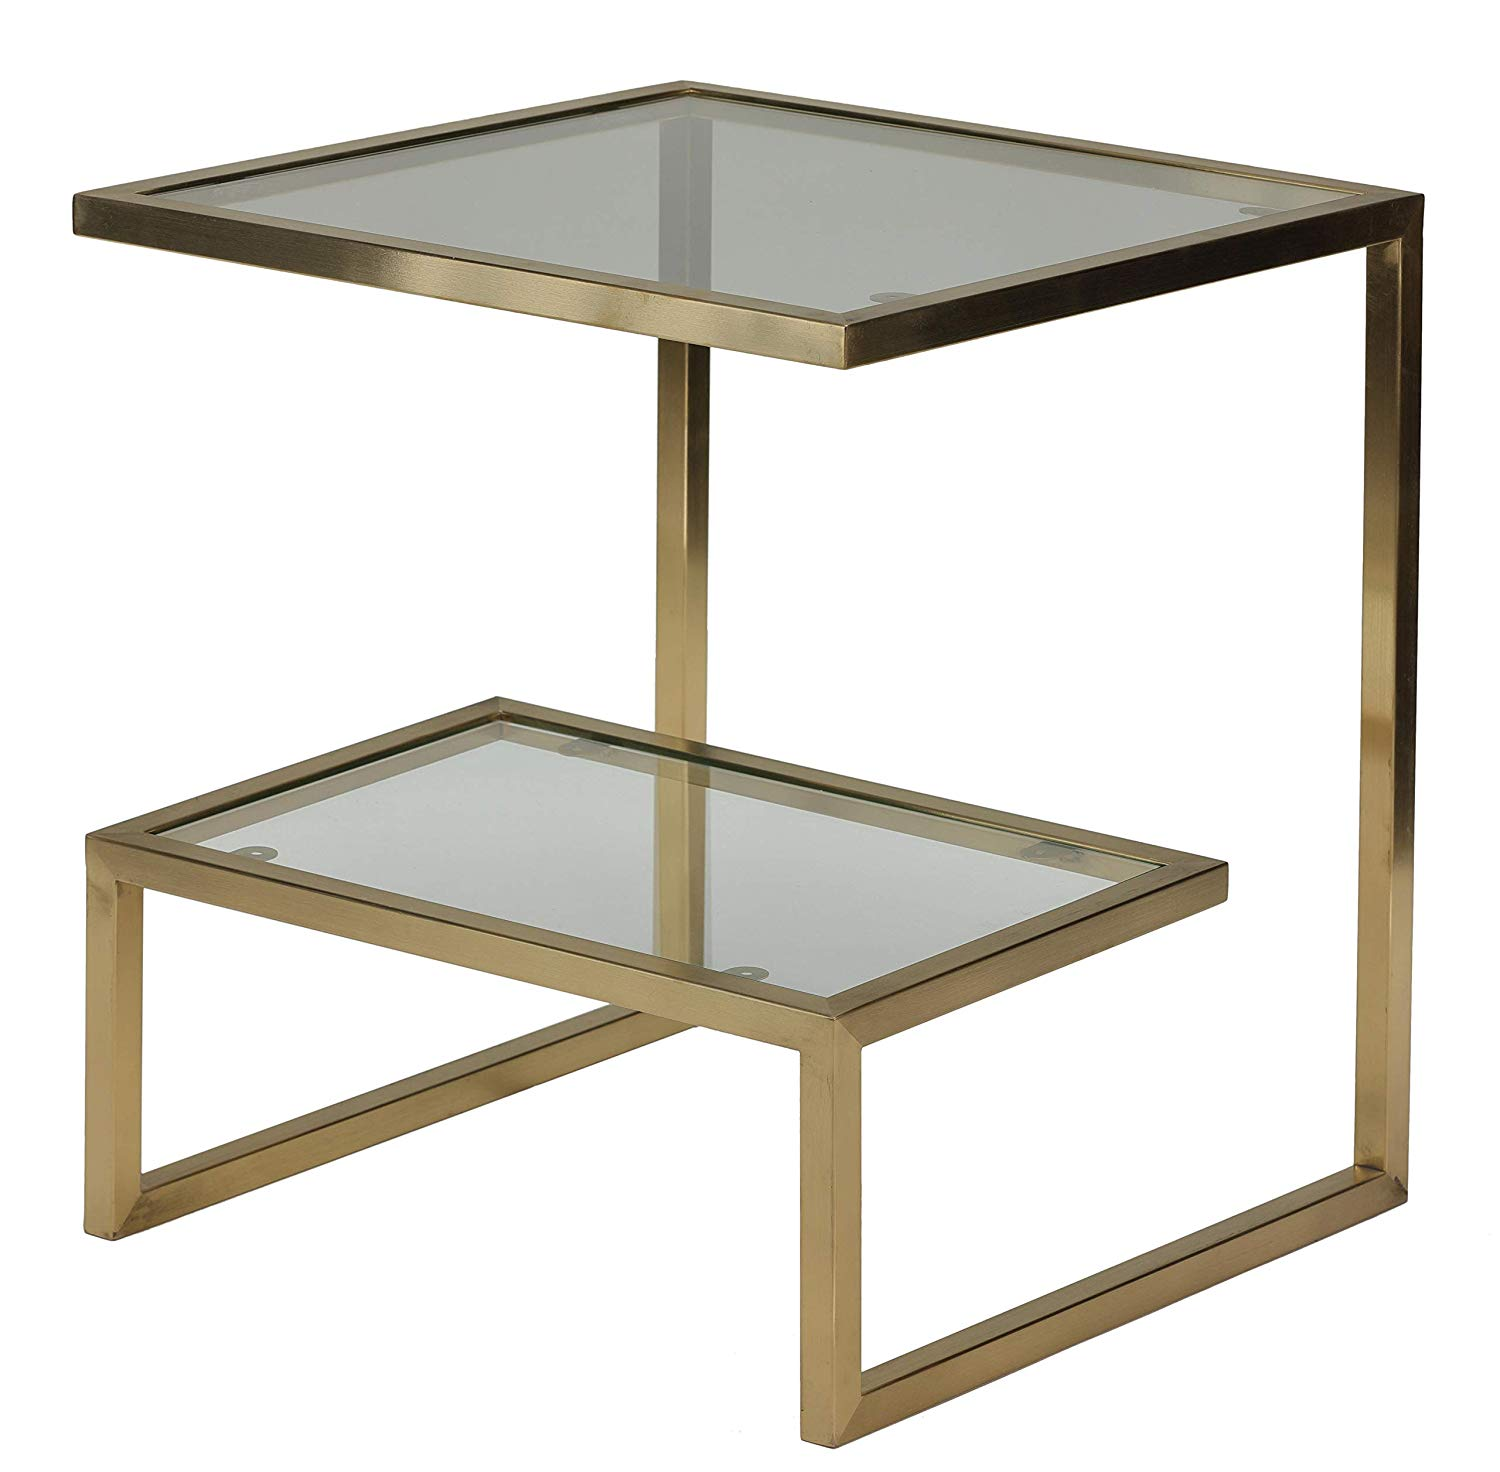 cortesi home luician contemporary end table brushed tables gold kitchen replacement cushions for outdoor furniture homesense sofa covers classic style coffee antique solid oak